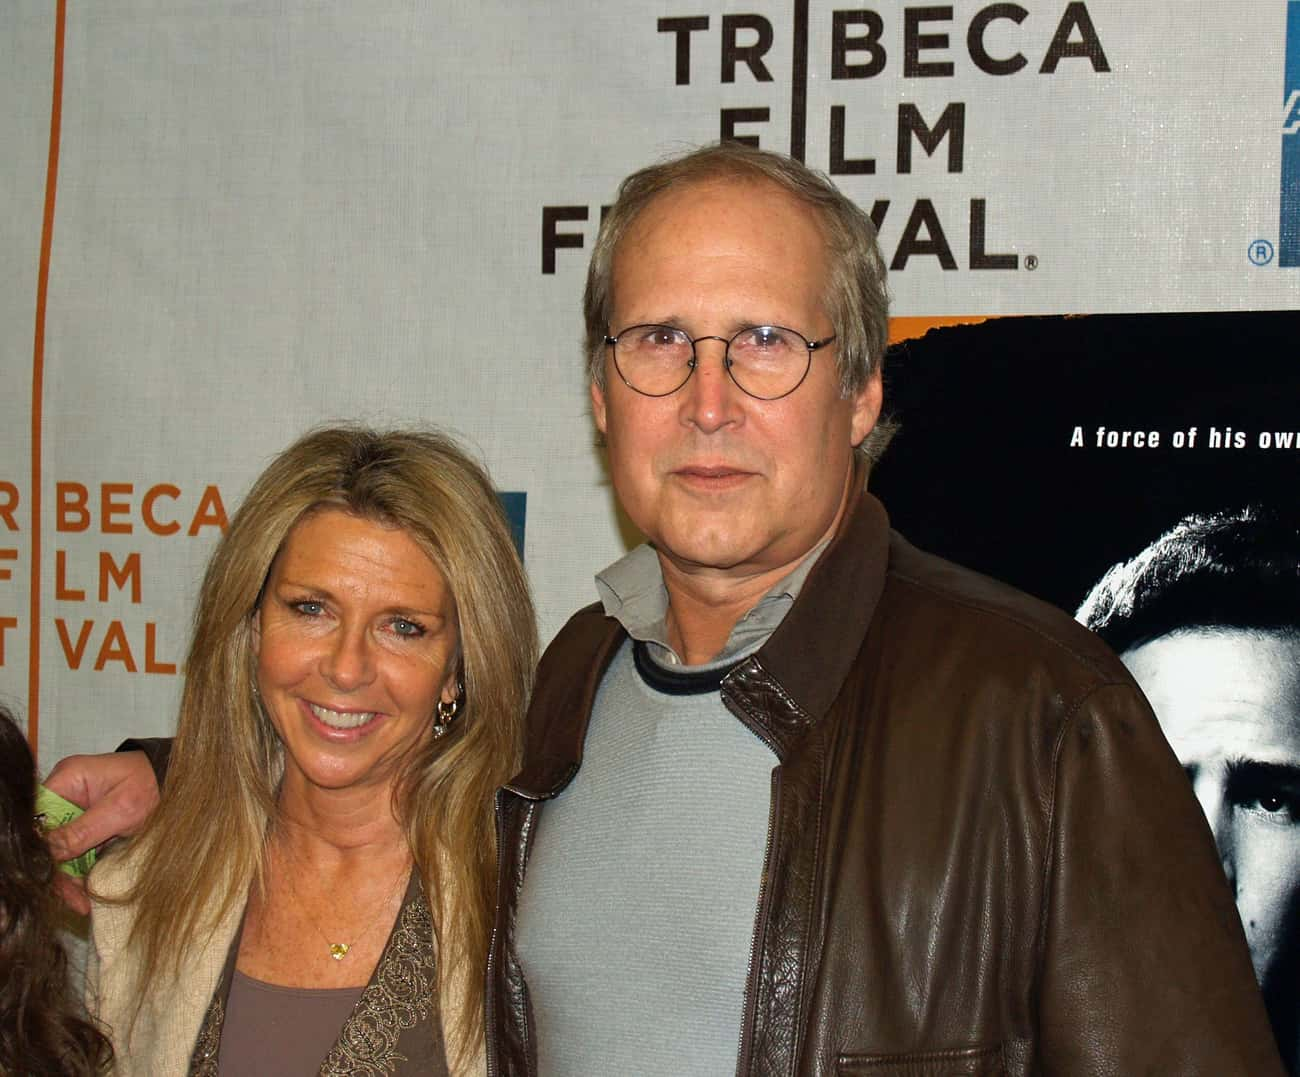 Chevy Chase & Jayni Luke is listed (or ranked) 3 on the list The Longest Hollywood Marriages